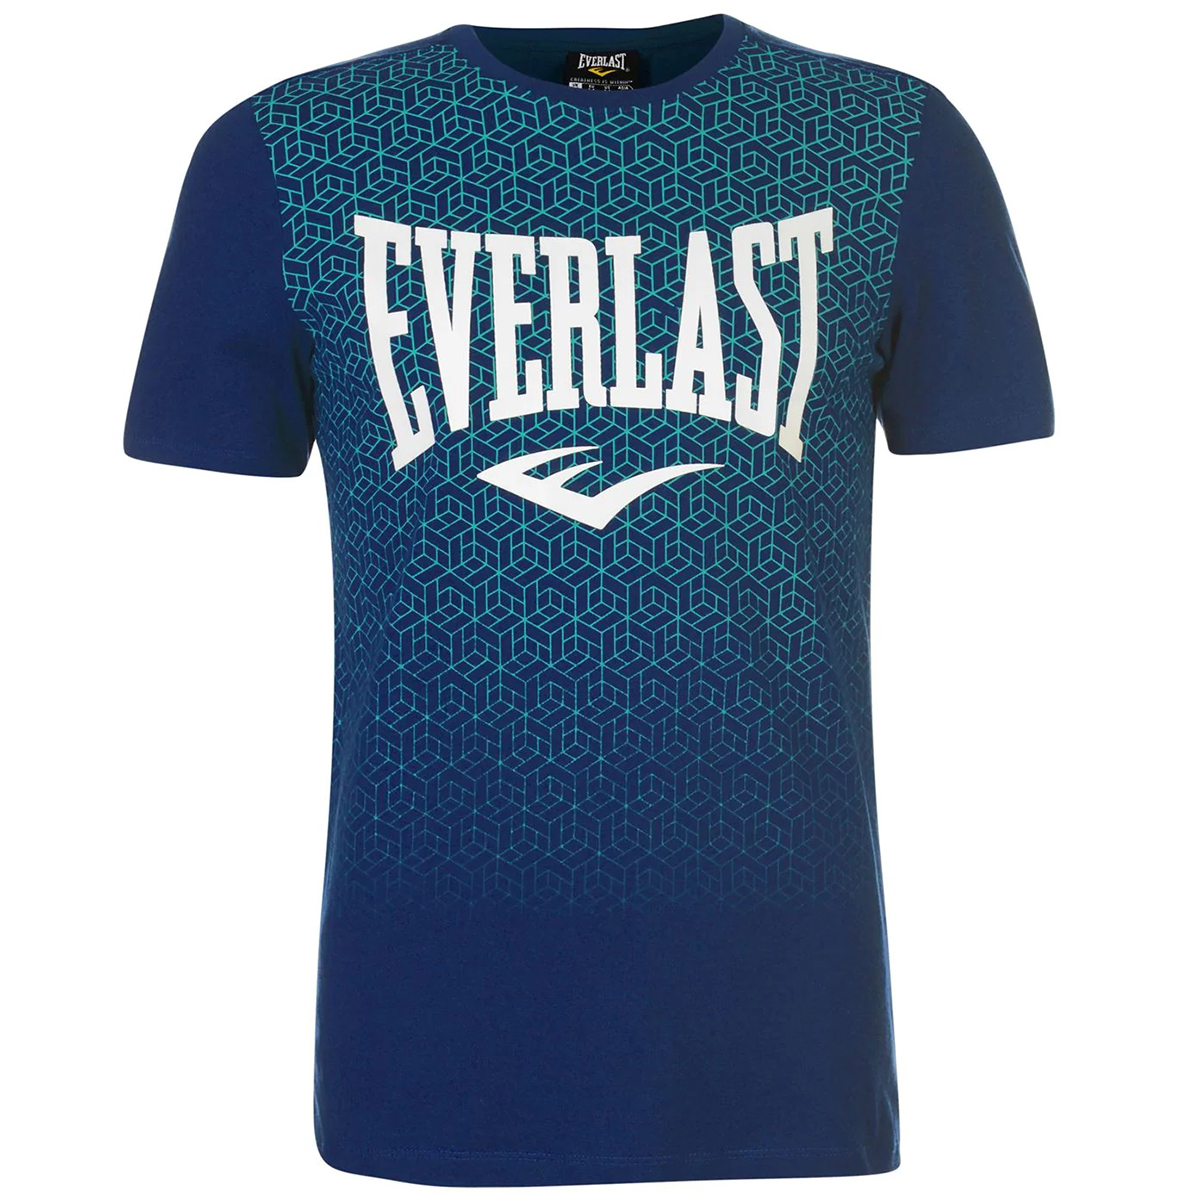 Everlast Men's Geo Print Short-Sleeve Tee - Blue, S